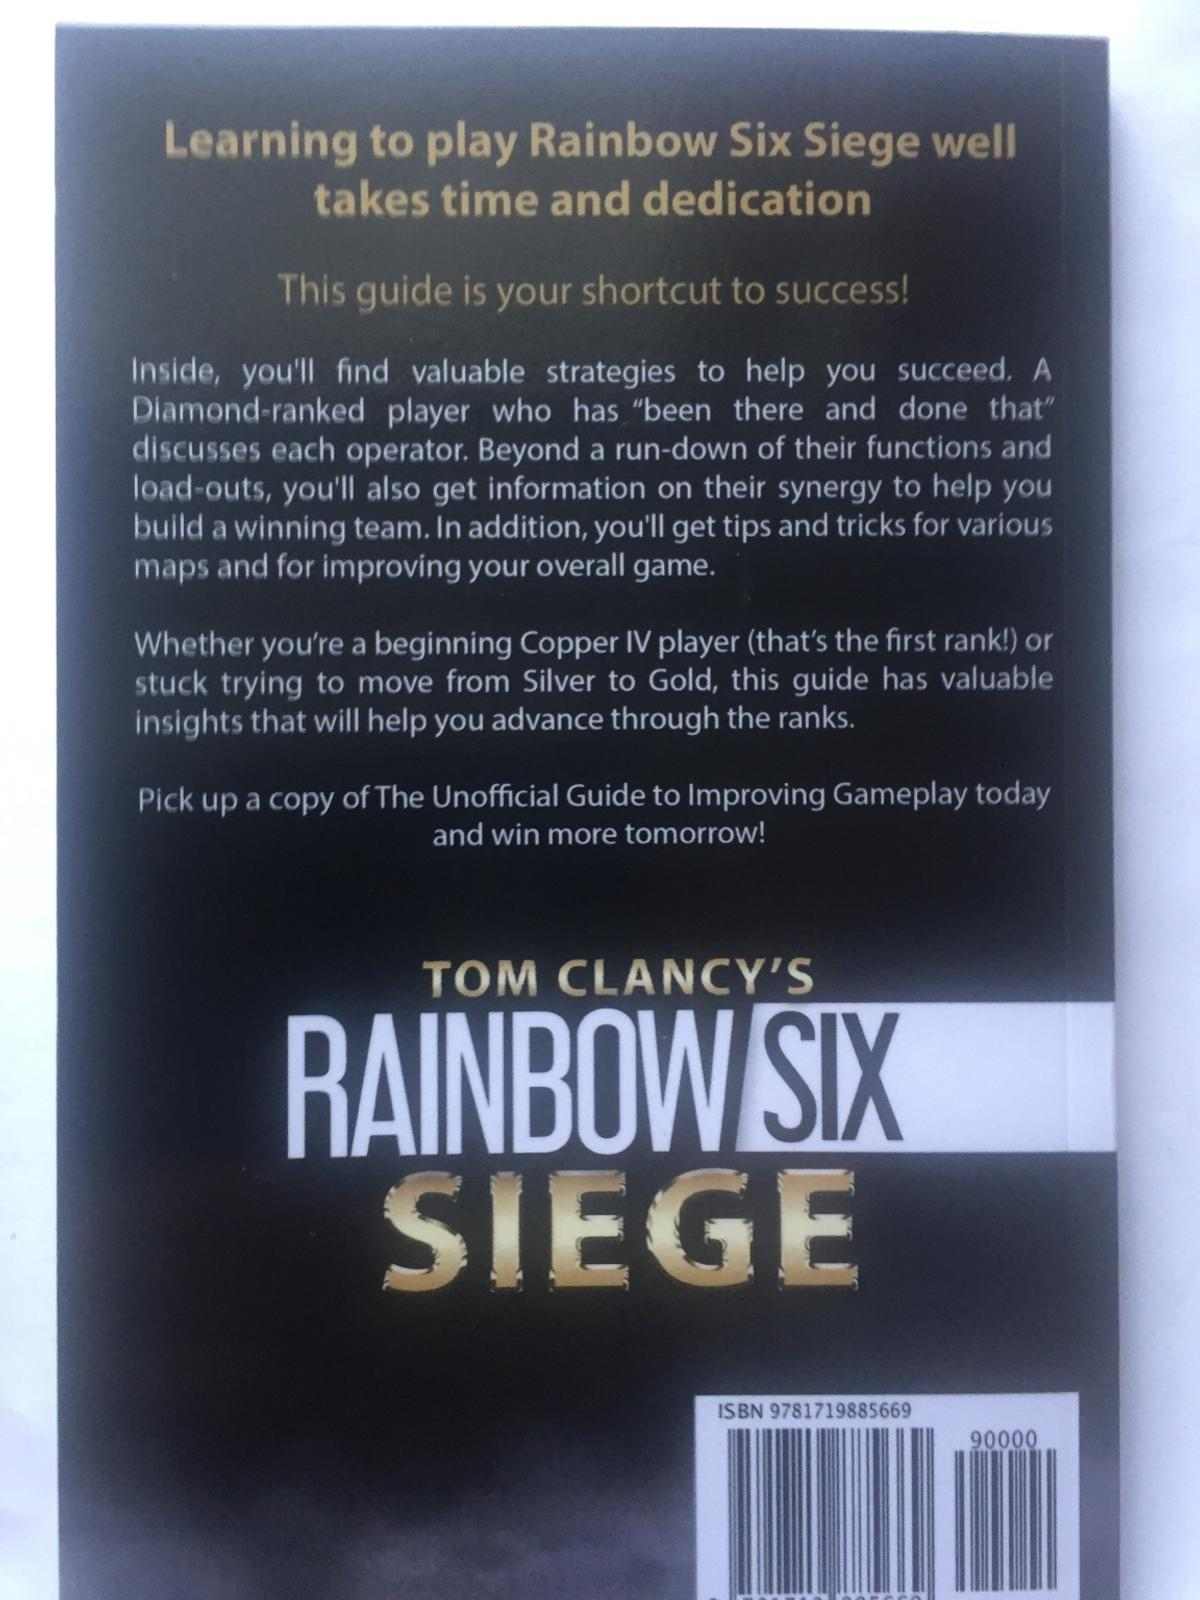 Rainbow 6 Siege unofficial gameplay guide